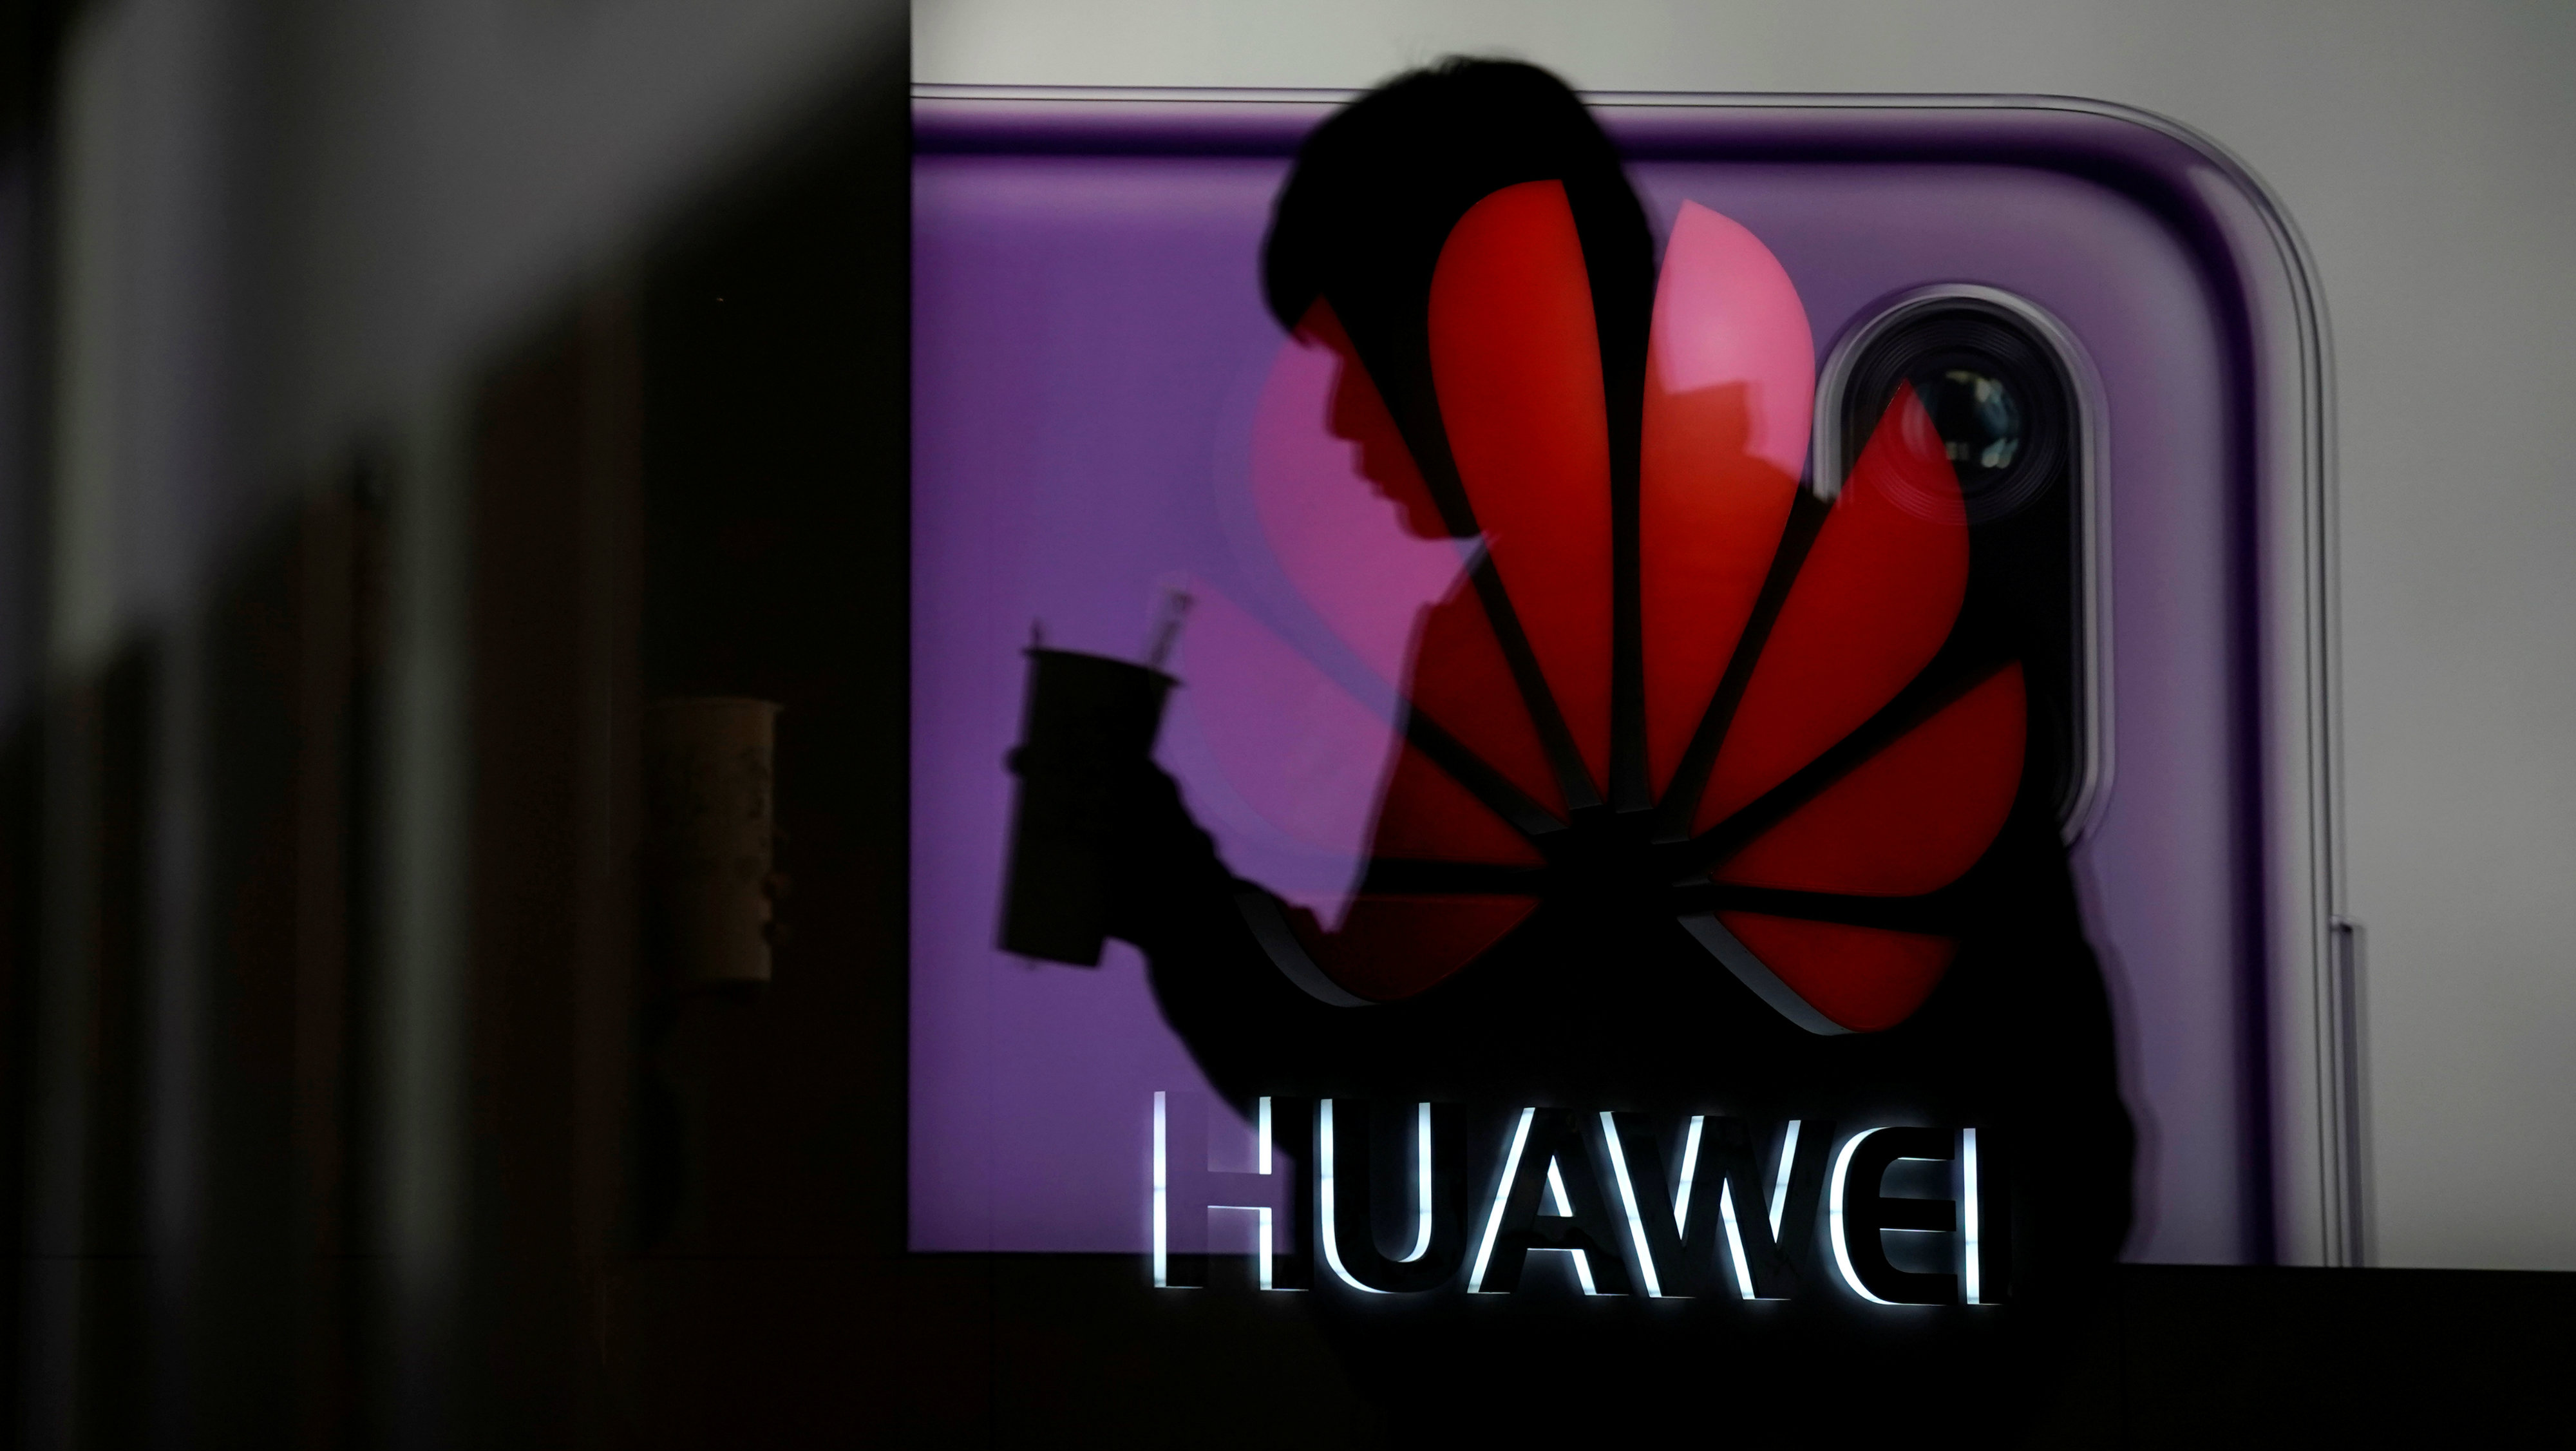 The full list of crimes Huawei is accused of committing by the US